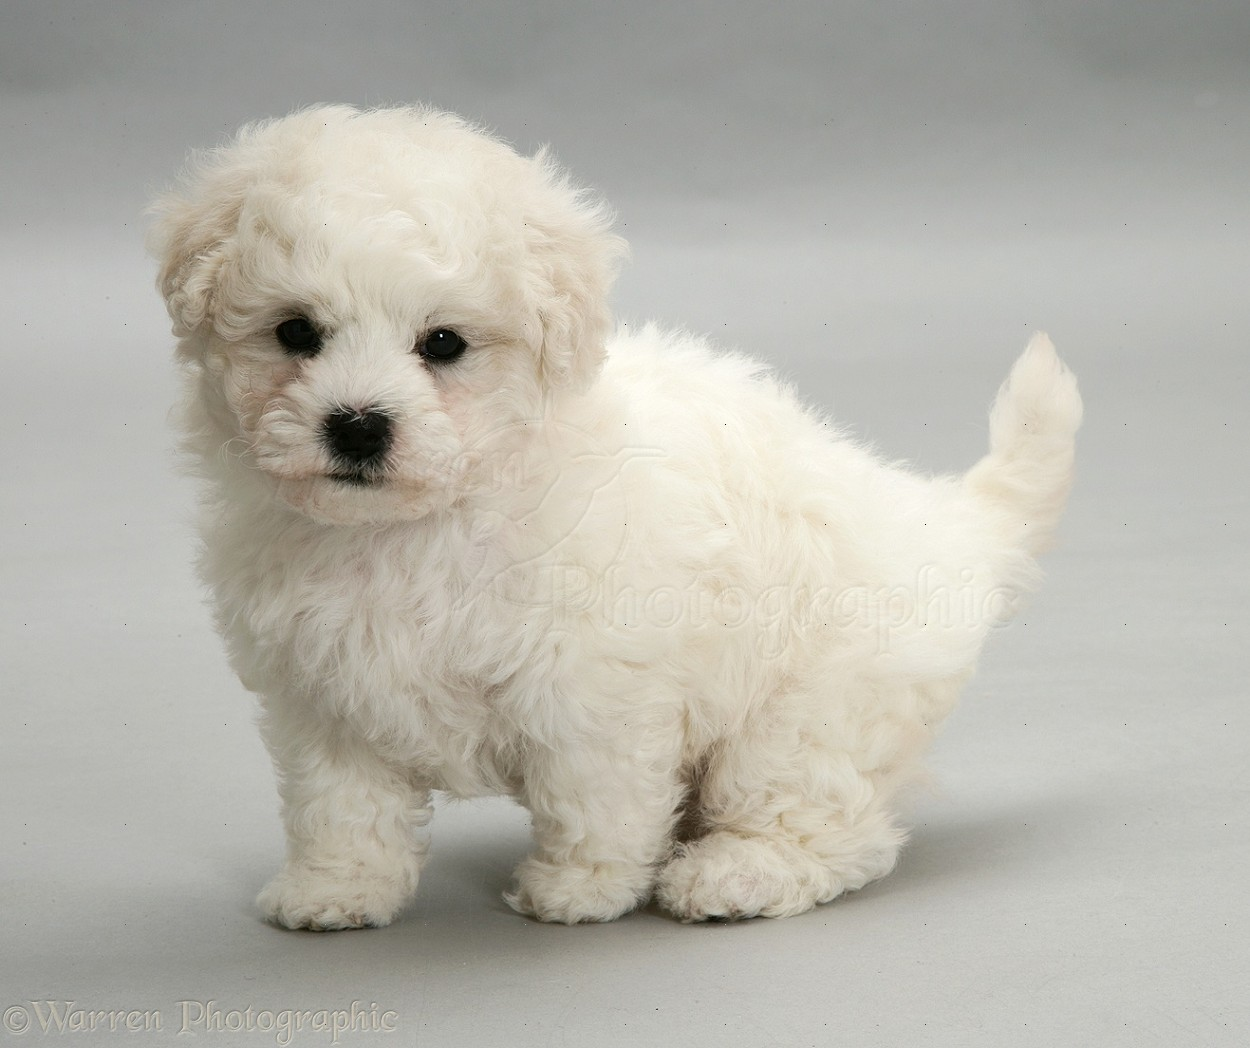 Dog: Cute Bichon Frise puppy on grey background photo  WP11717